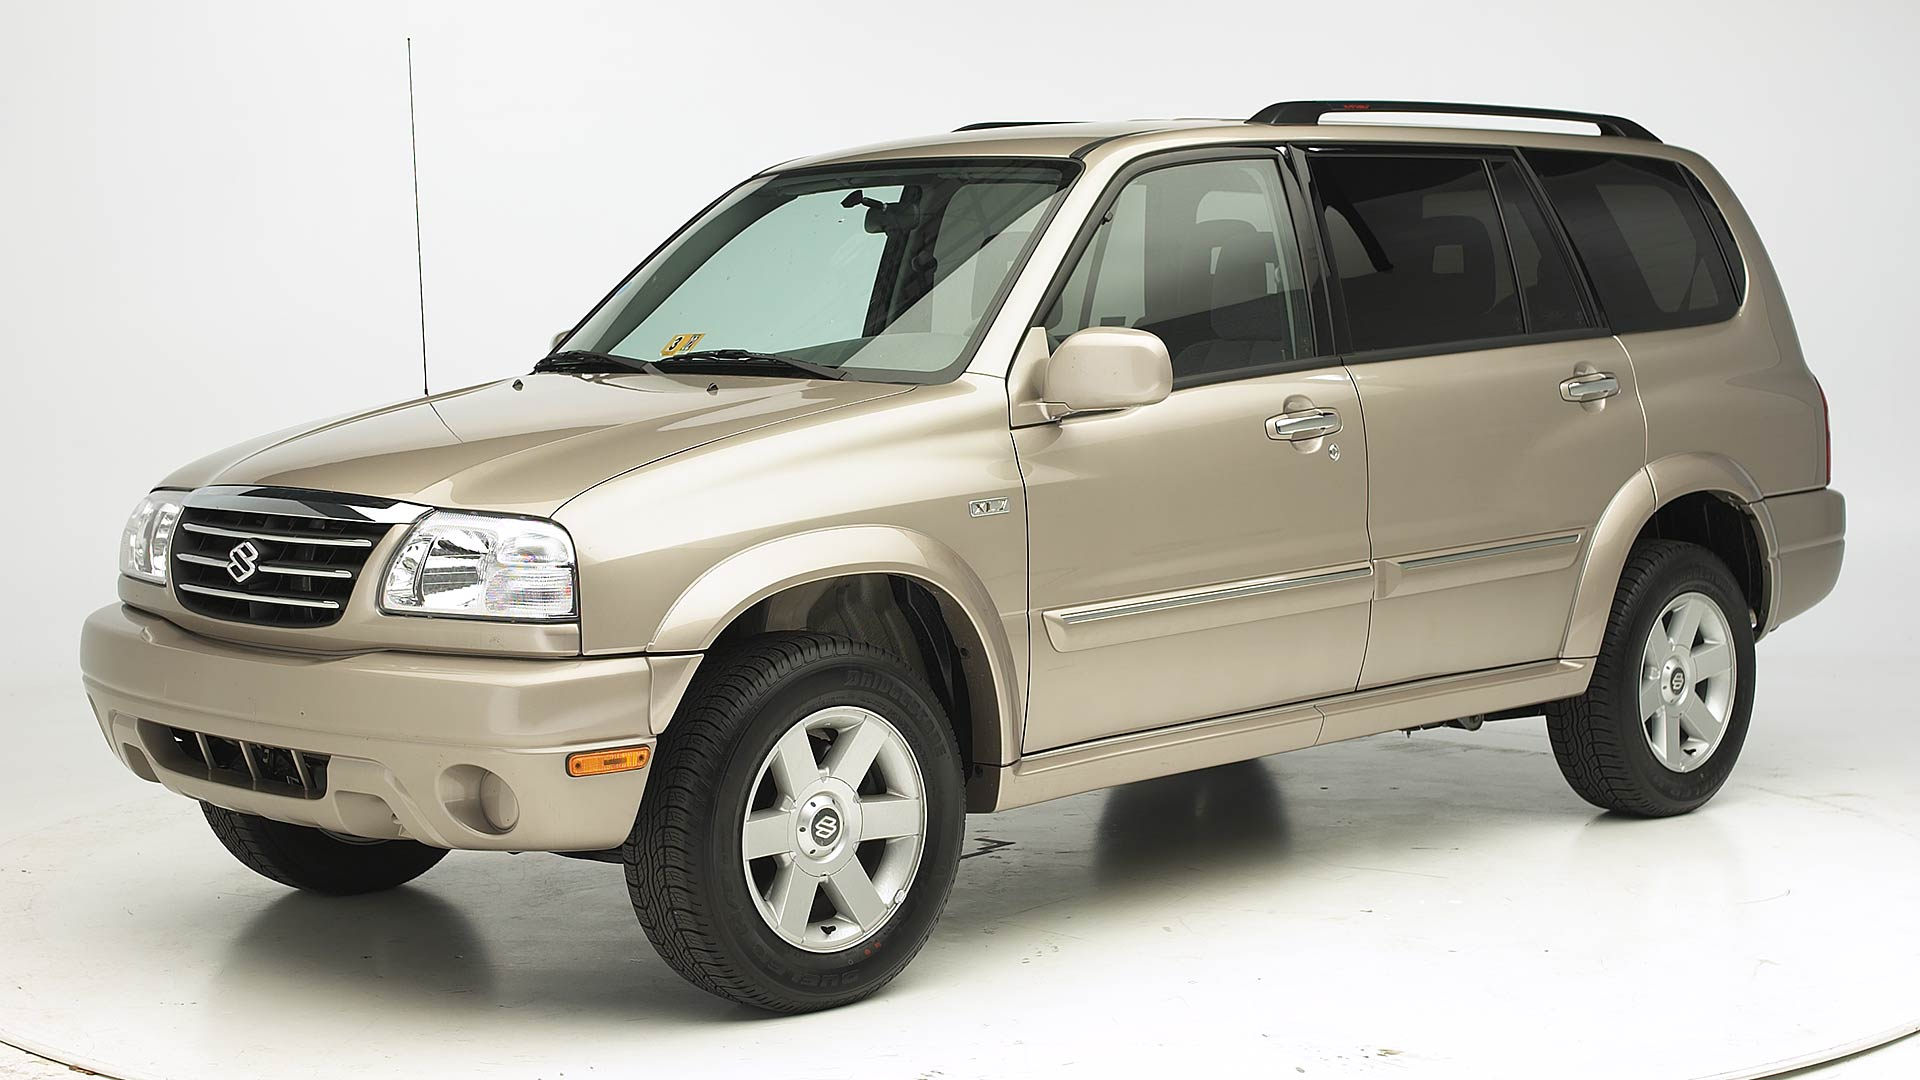 2005 Suzuki Grand Vitara XL-7 4-door SUV